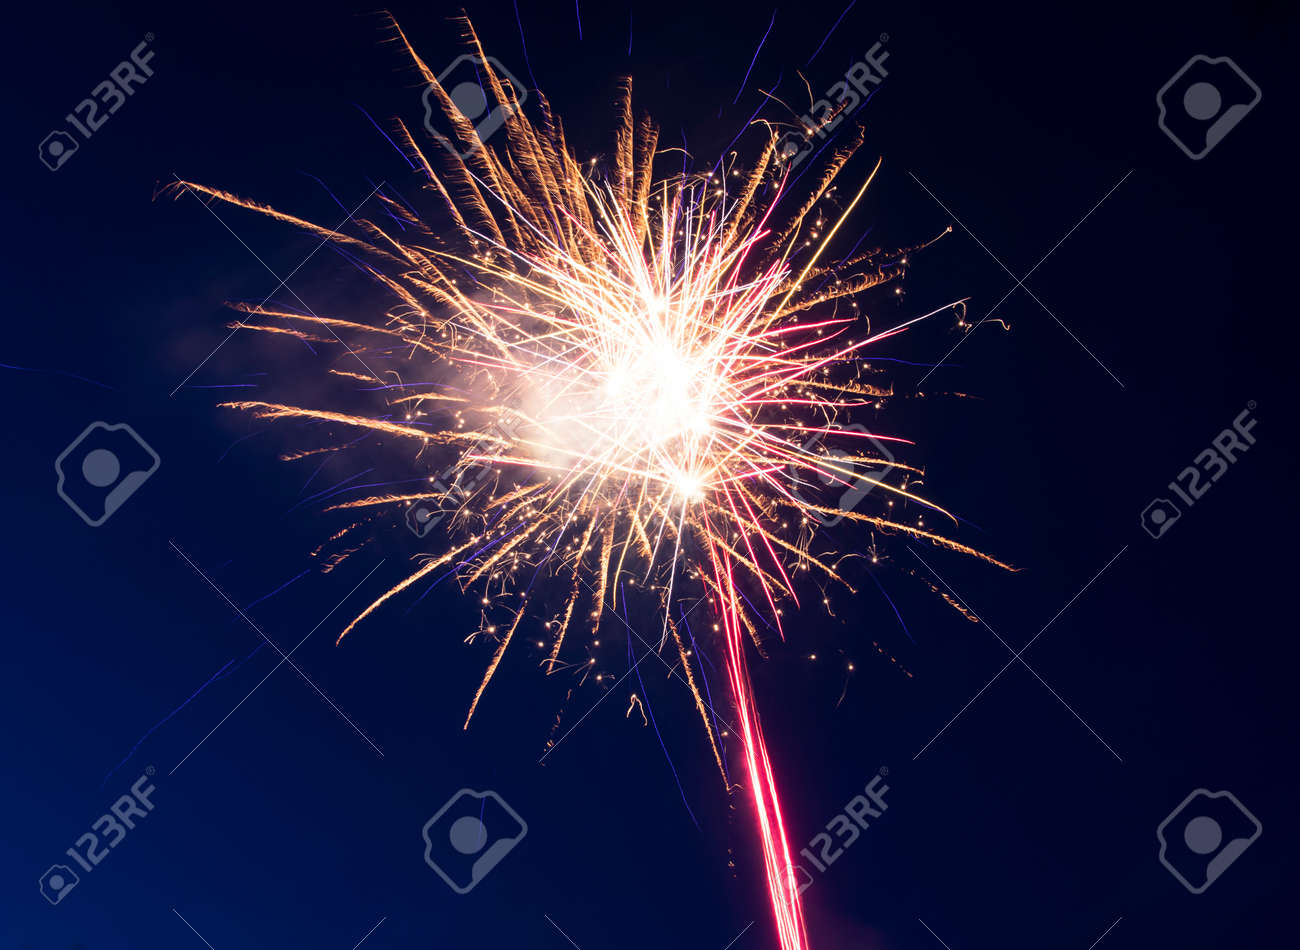 Fireworks on the background of the night sky - 163596404